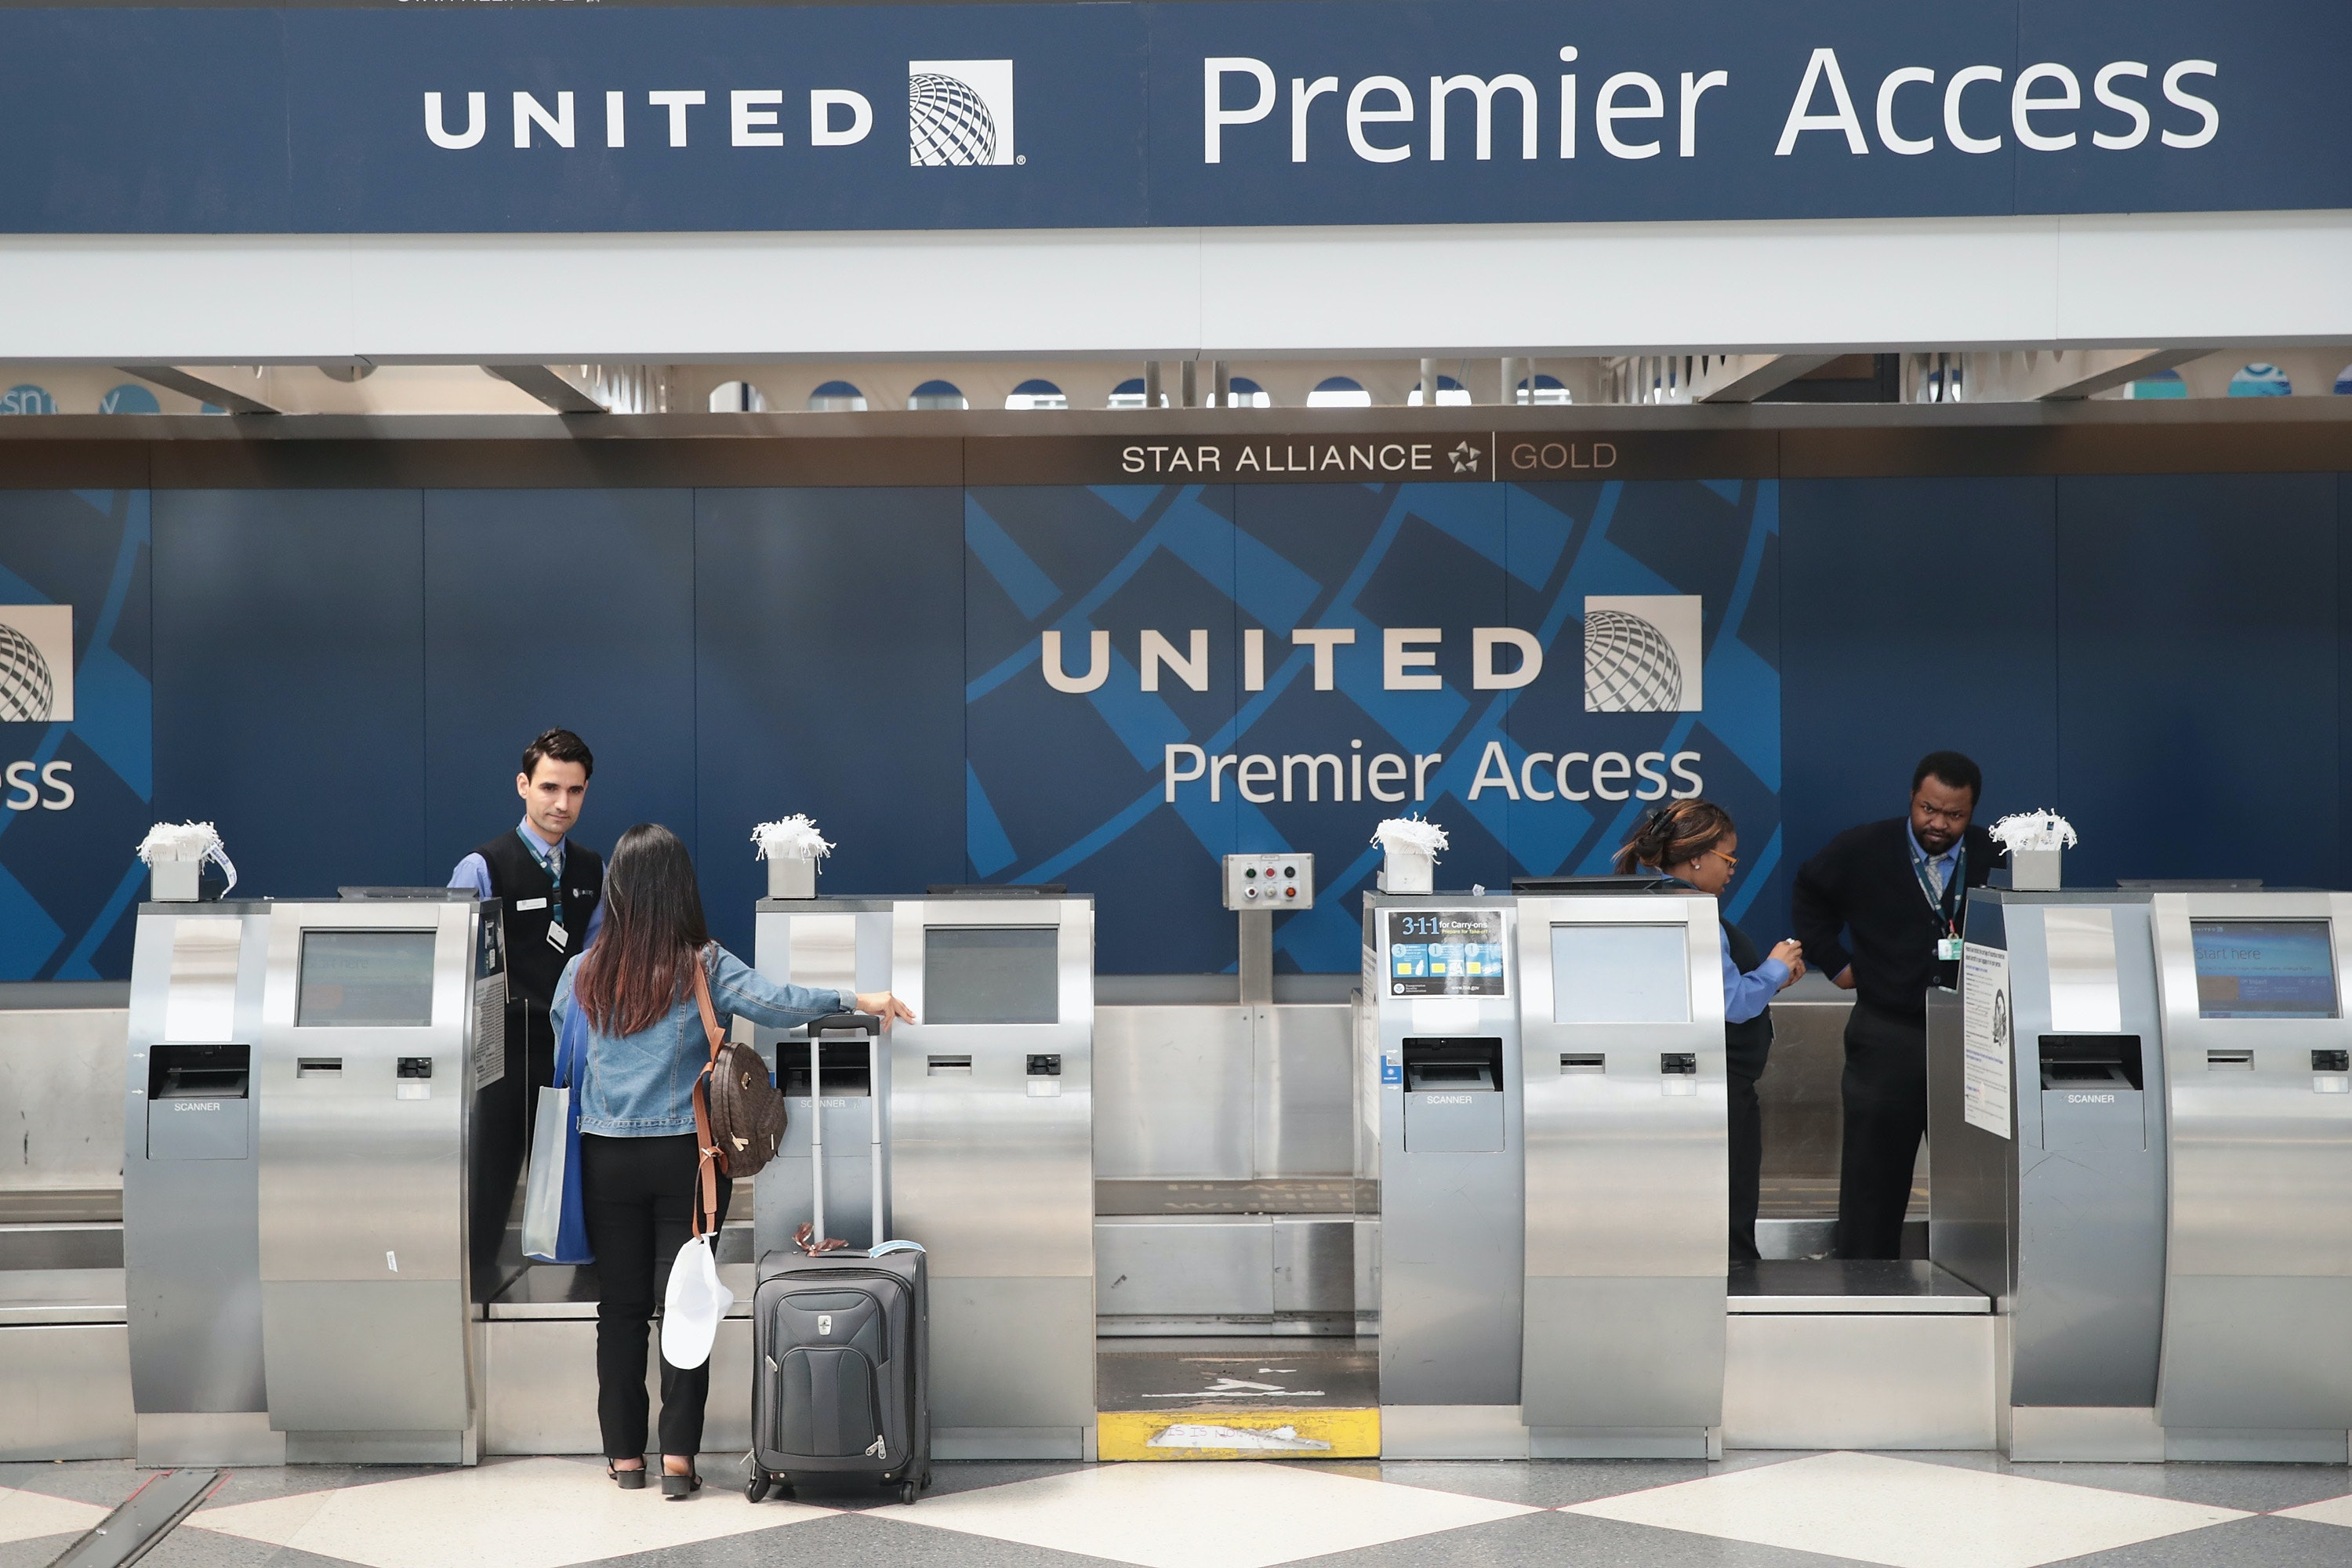 United won't remove seated passengers from overbooked flights anymore